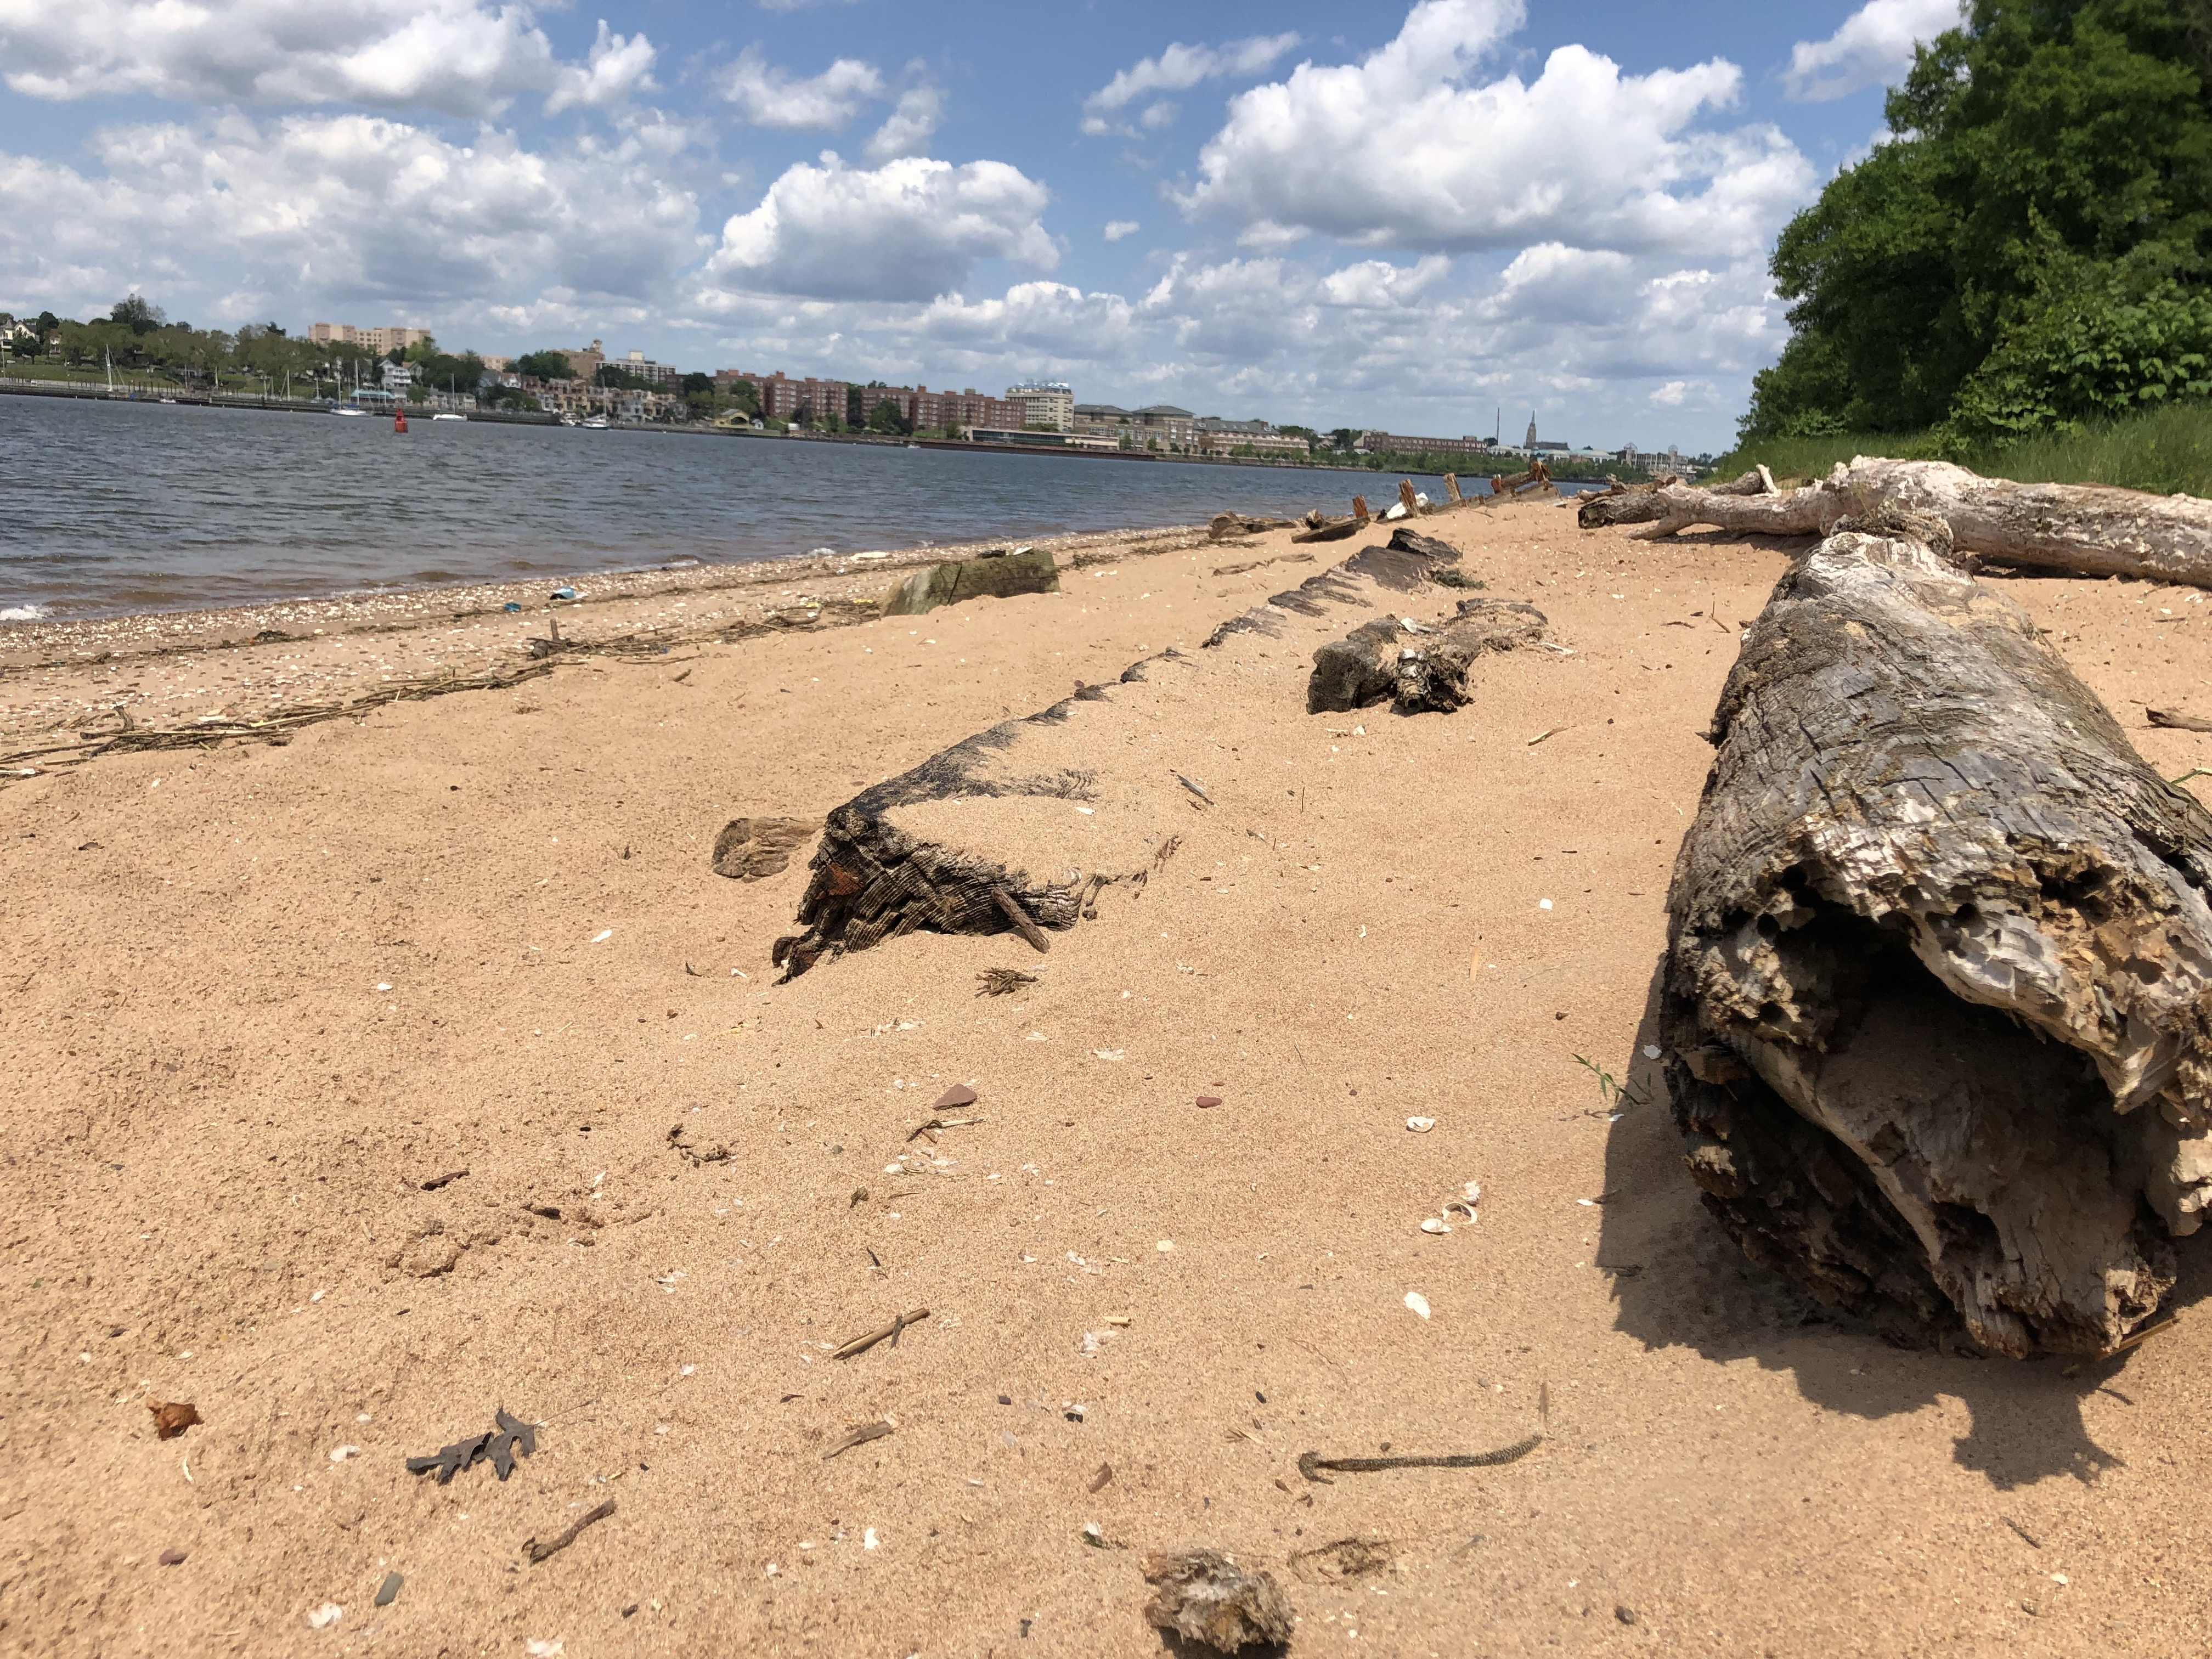 Pols request increased surveillance of S.I. beaches to curb drug use; needles found during cleanup